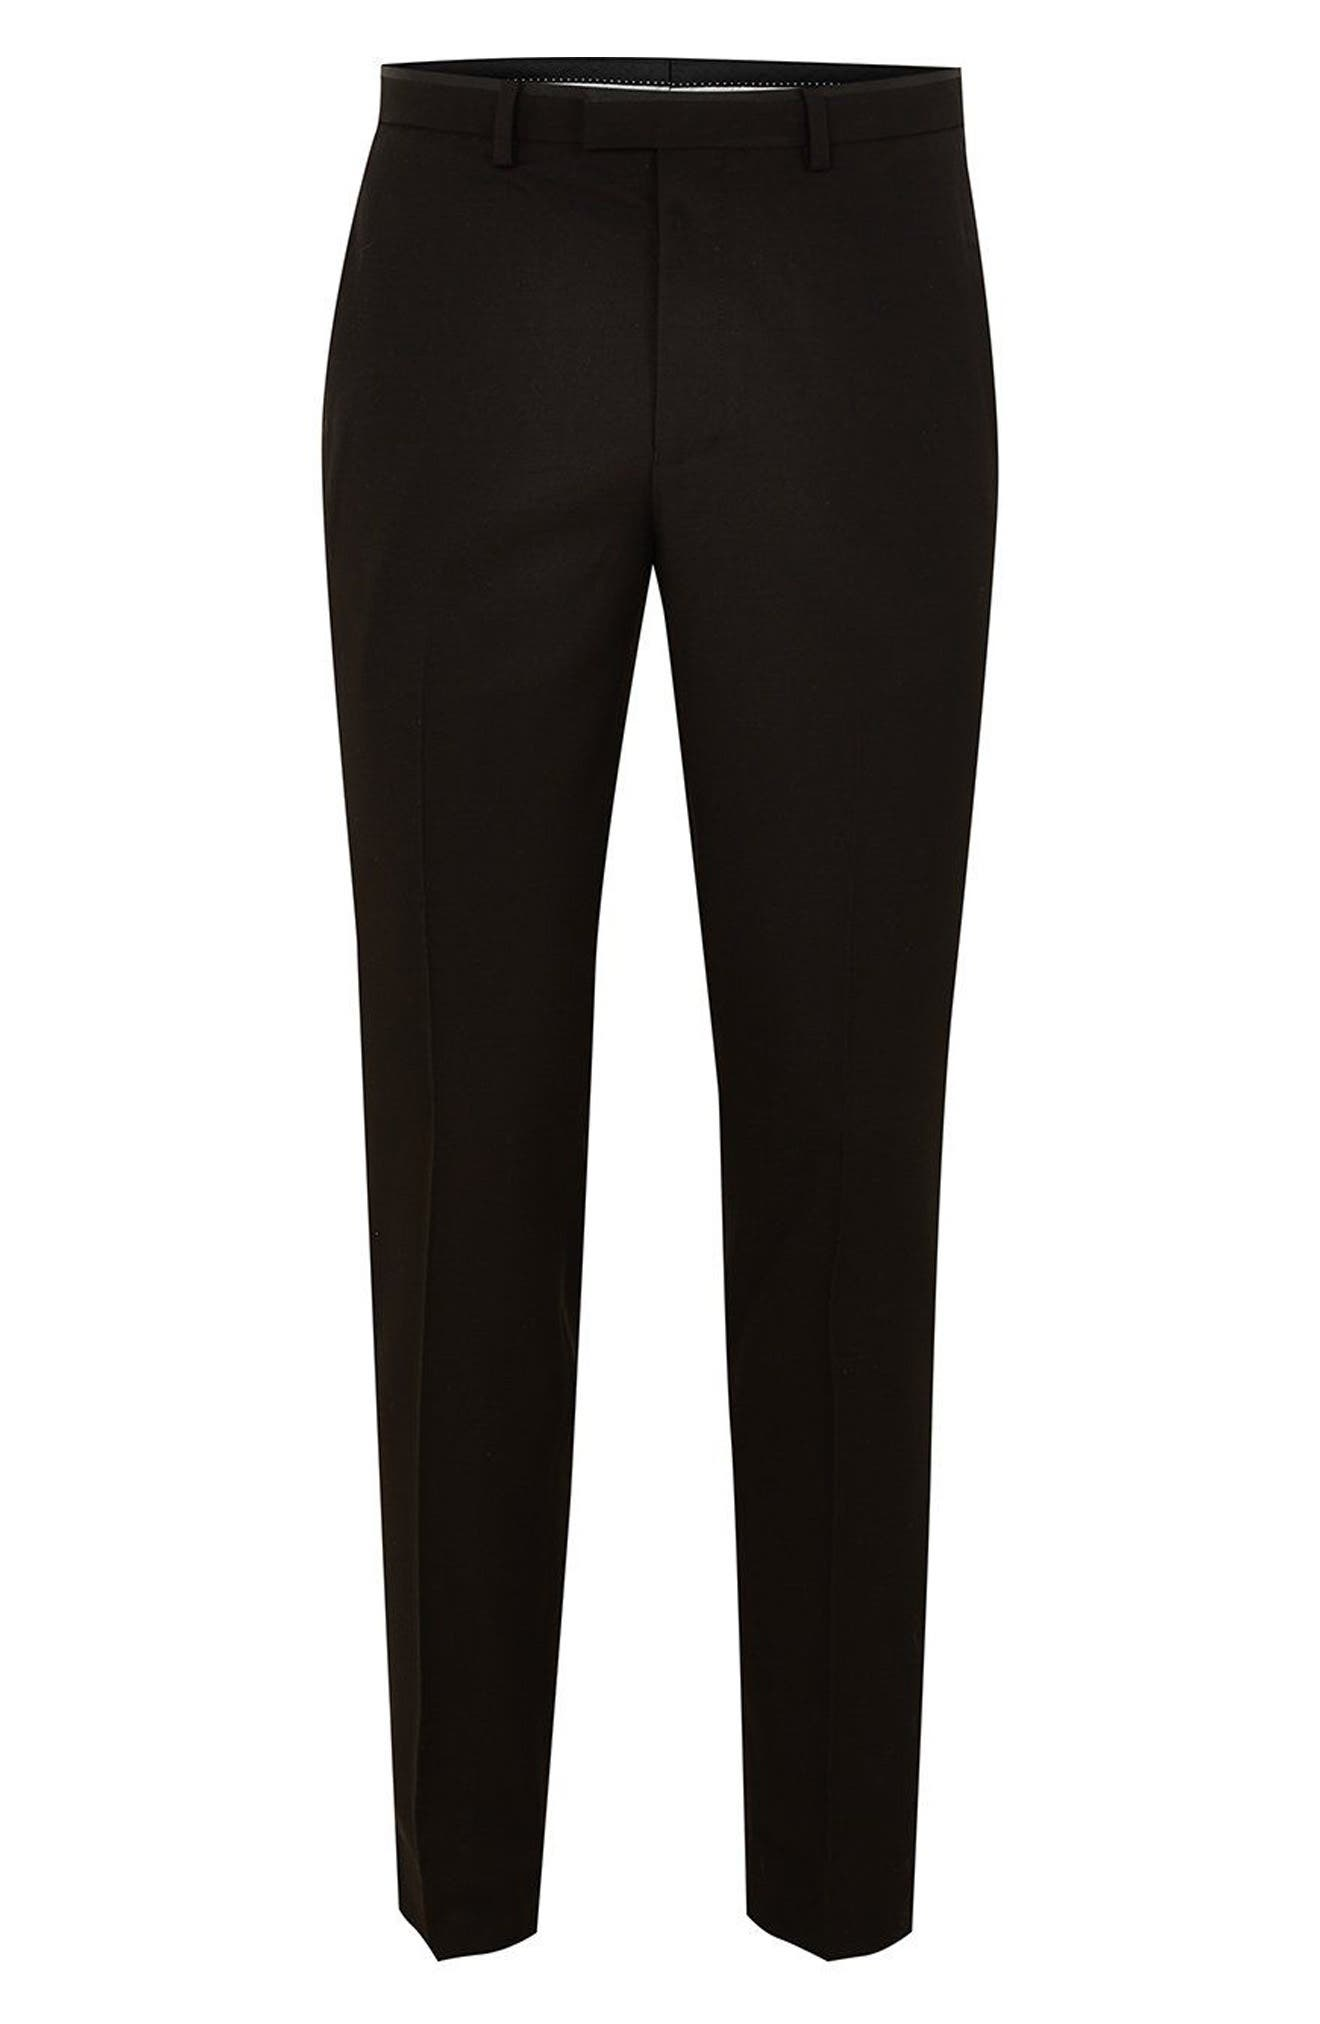 Satin Stripe Skinny Fit Suit Trousers,                             Alternate thumbnail 4, color,                             001